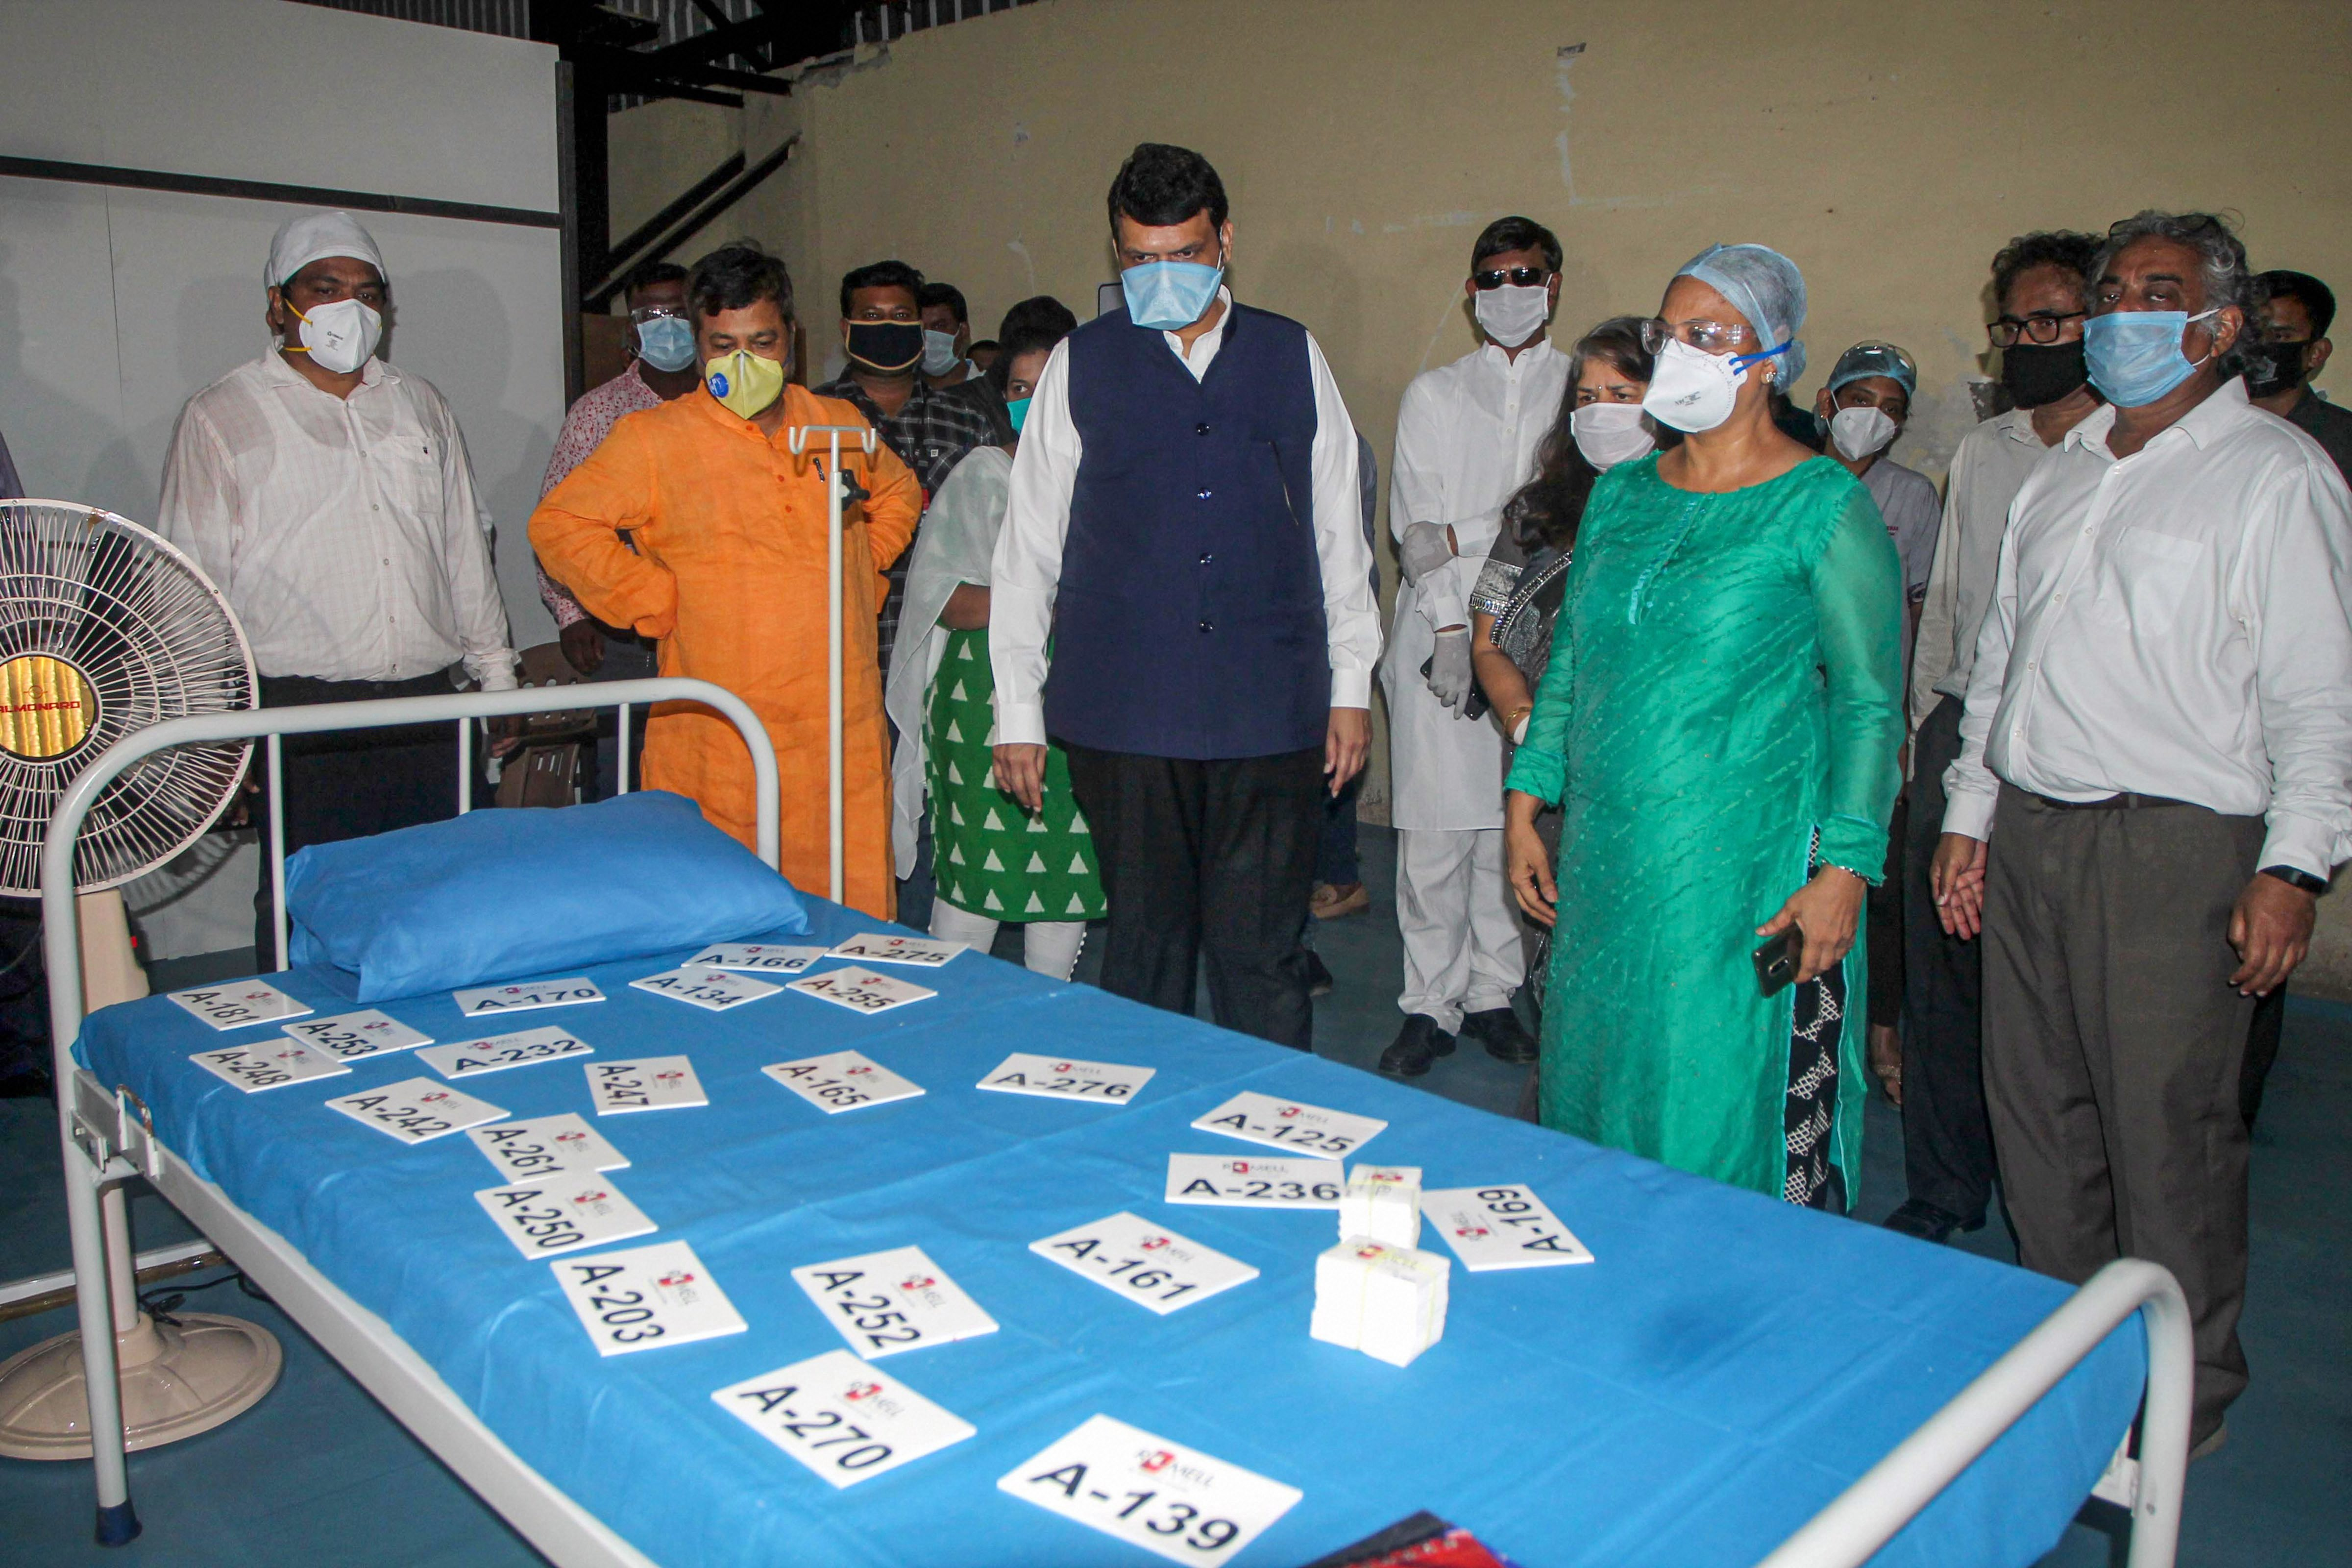 BJP leader Devendra Fadnavis visits a quarantine center for Covid-19 patients at Bombay Exhibition Centre, during the nationwide lockdown in wake of the coronavirus pandemic, at Goregaon in Mumbai, Monday, June 1, 2020